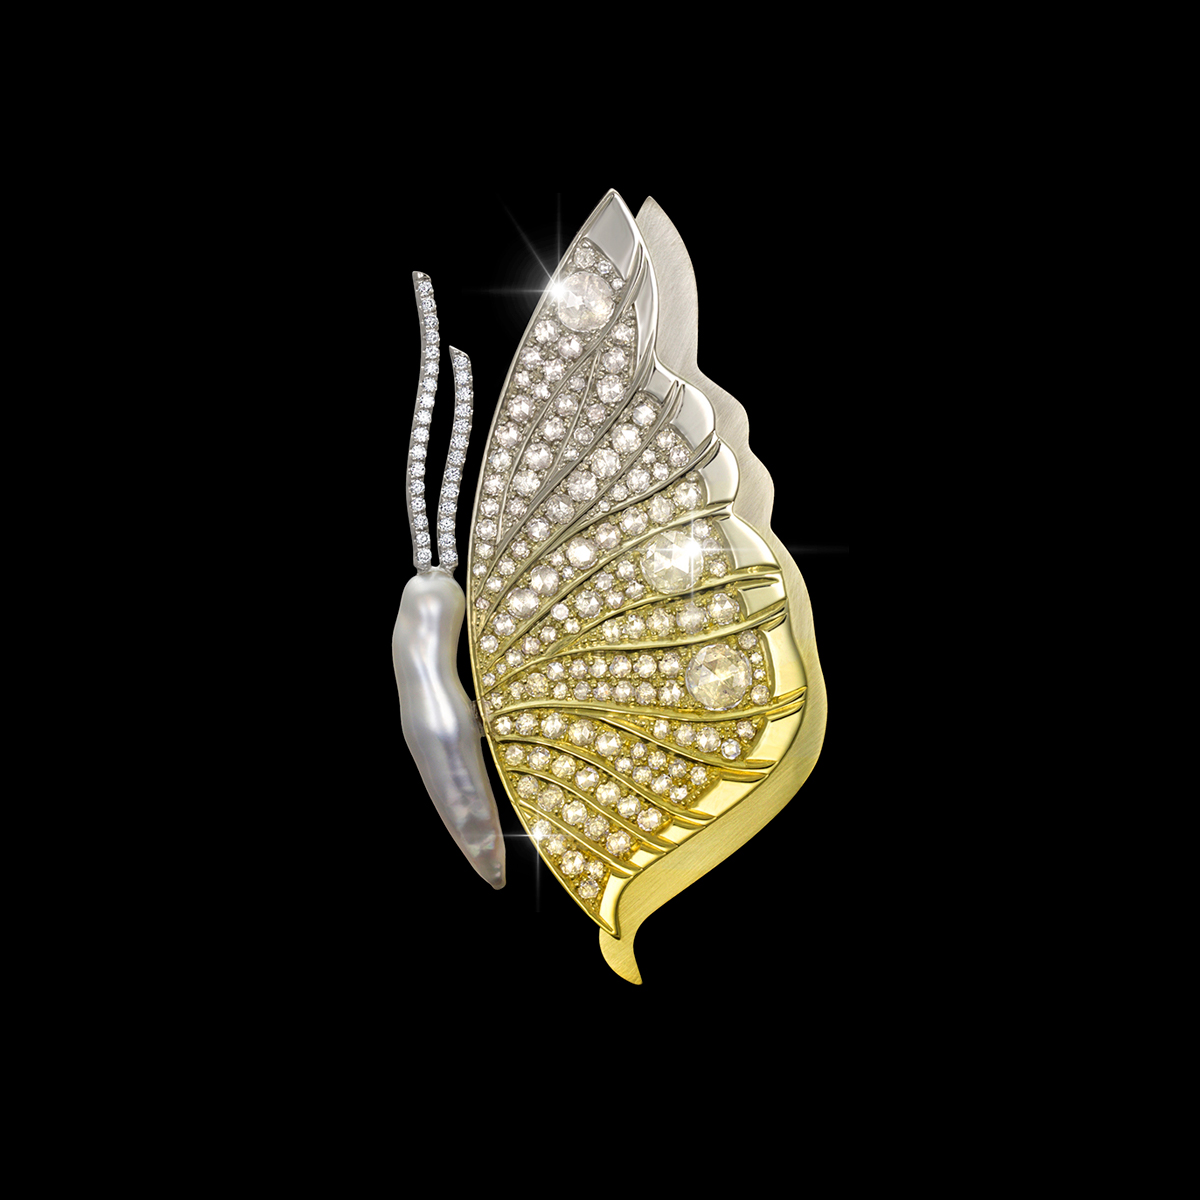 Diamond Brooch with SpectraGold Papilio